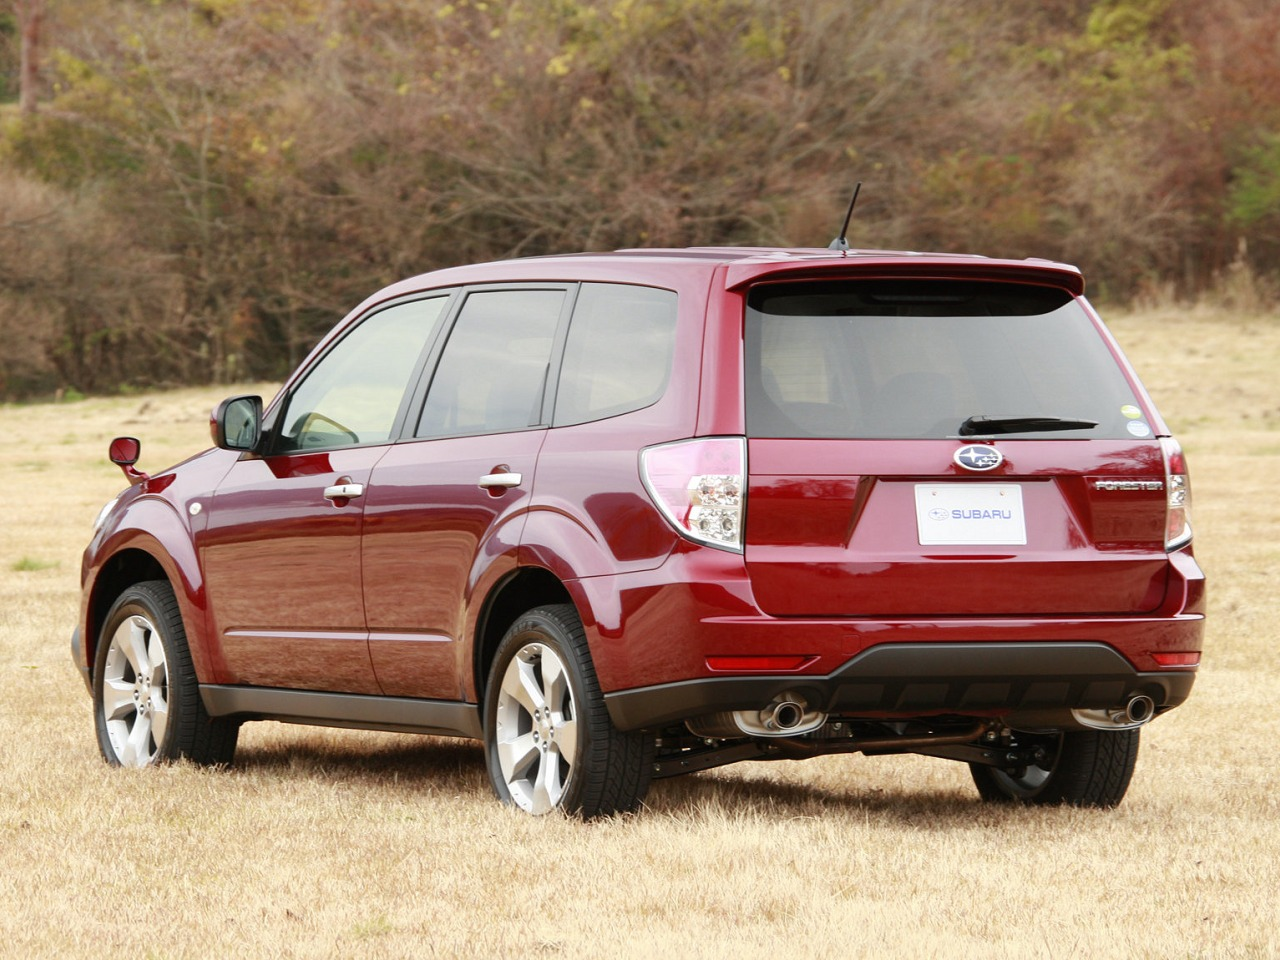 2008 Subaru Forester photo - 2